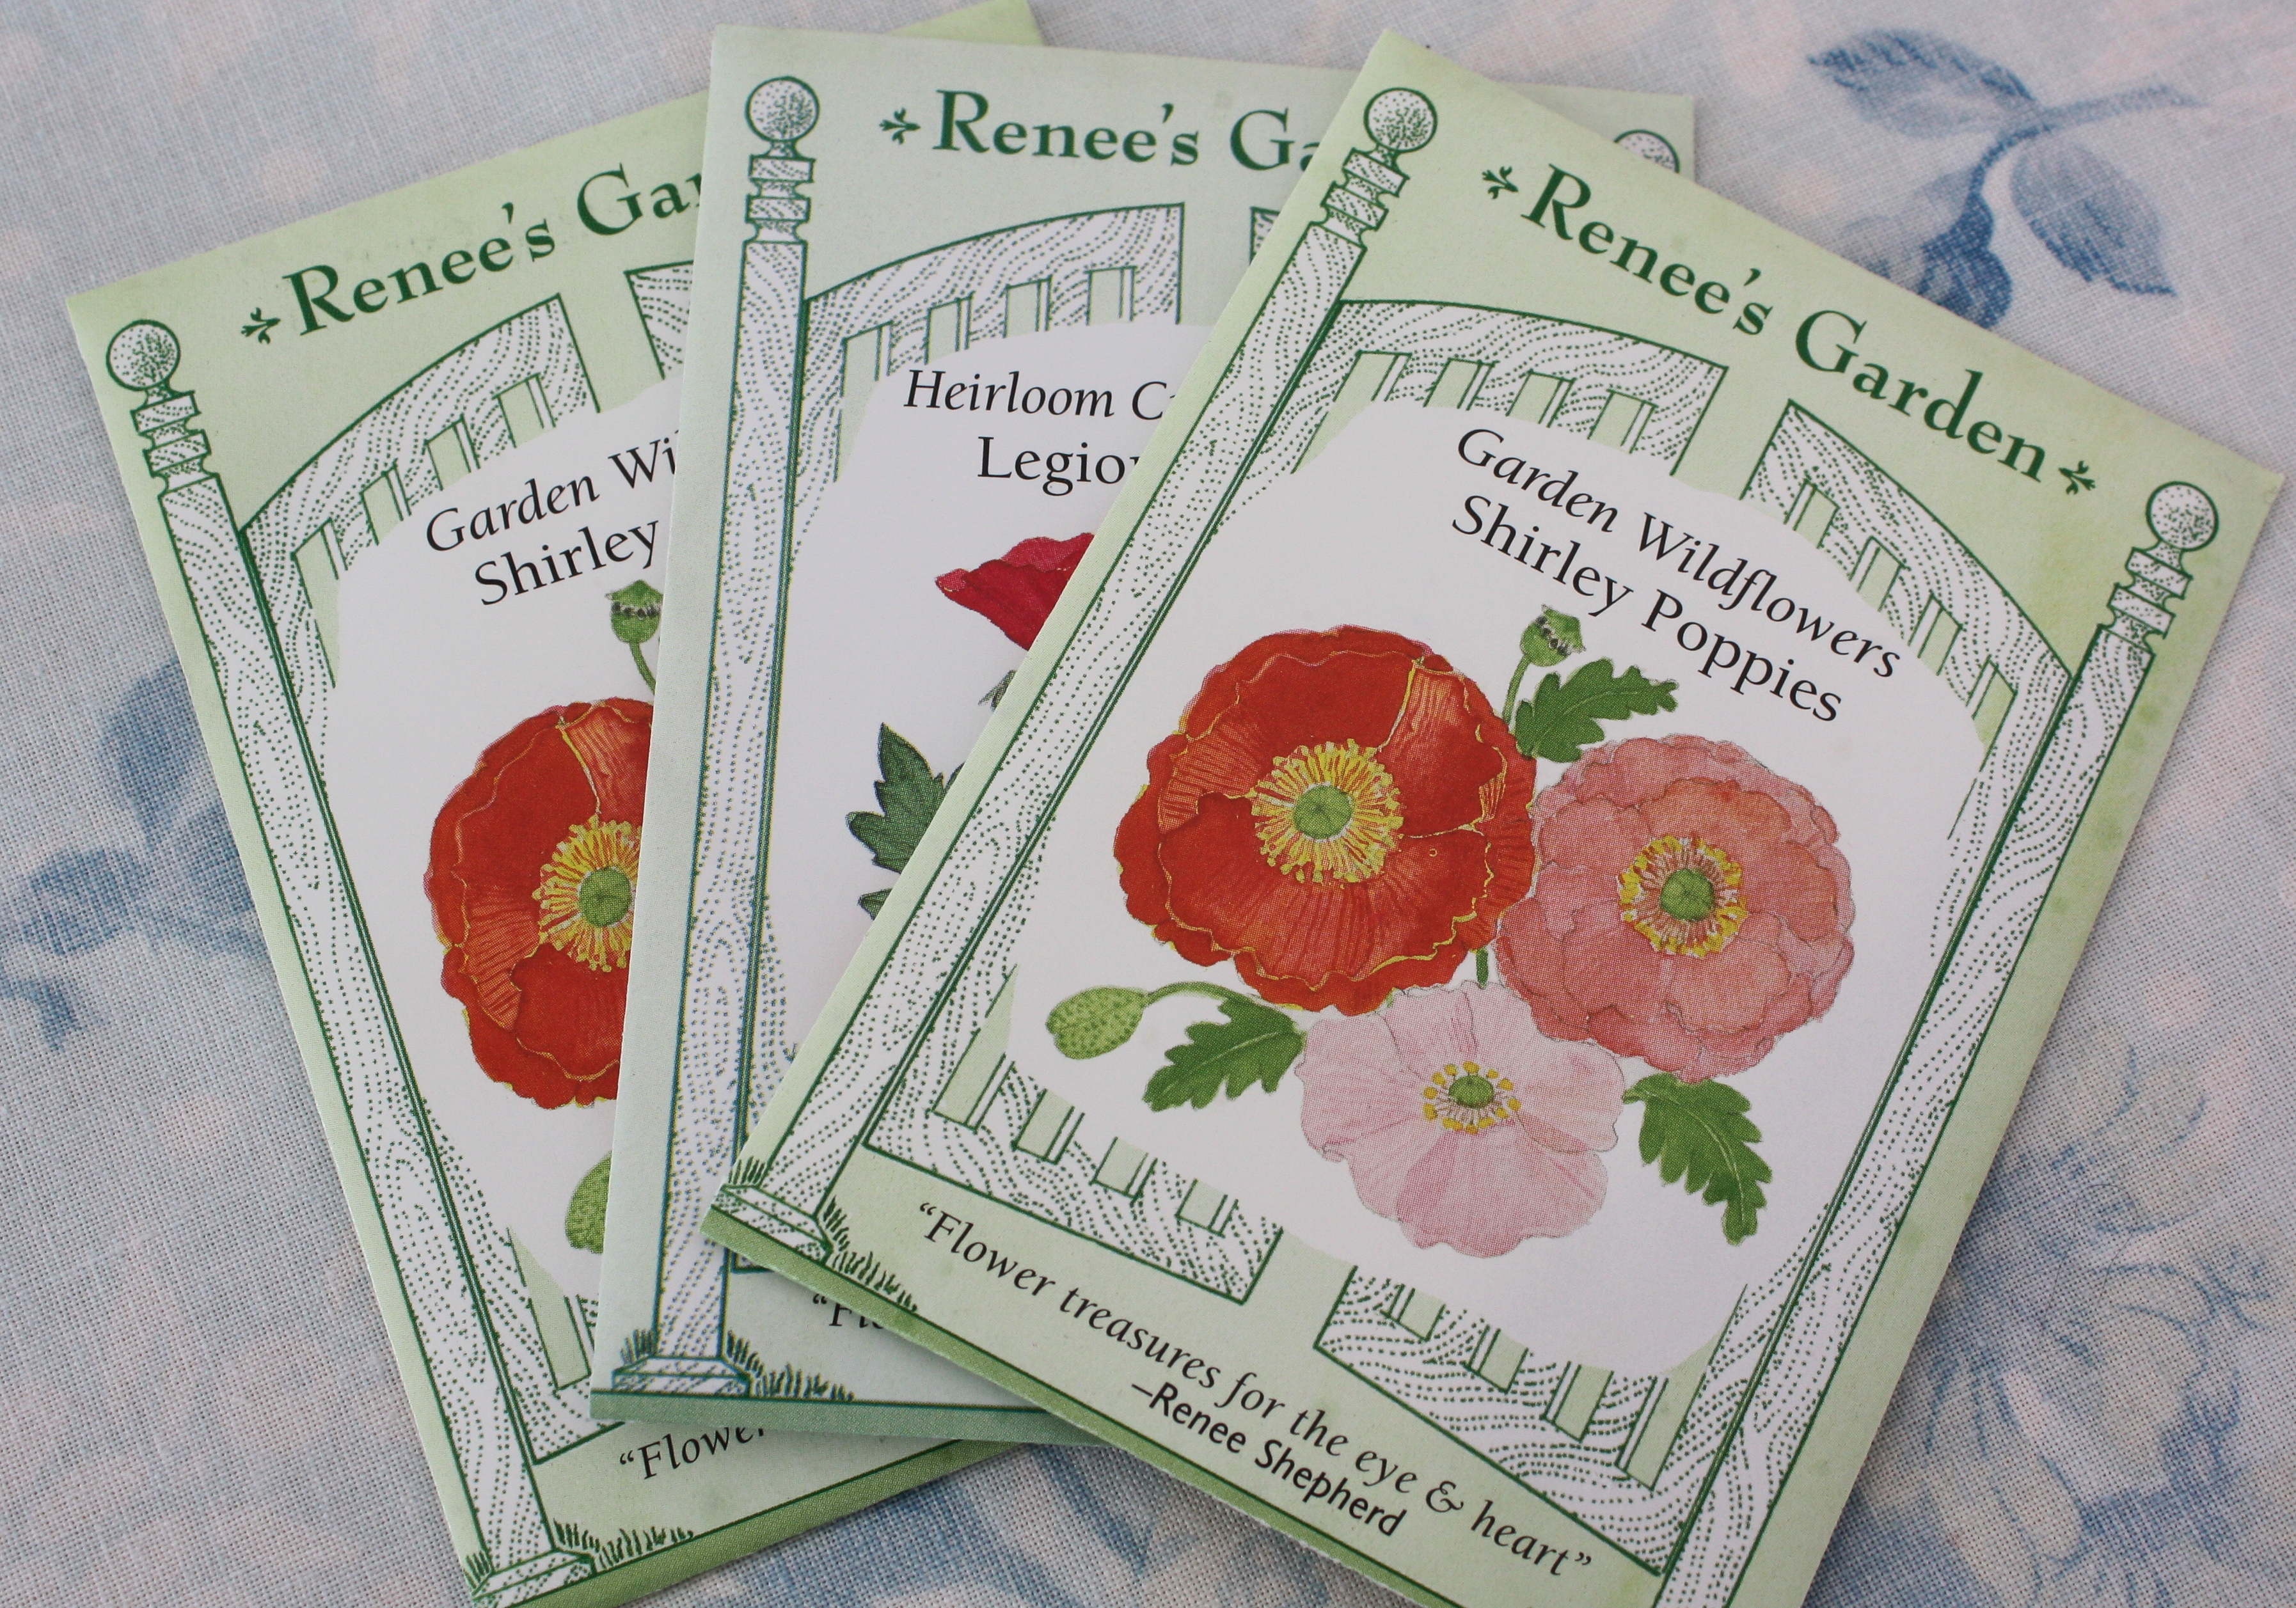 renee s garden shirley poppies kim smith designs